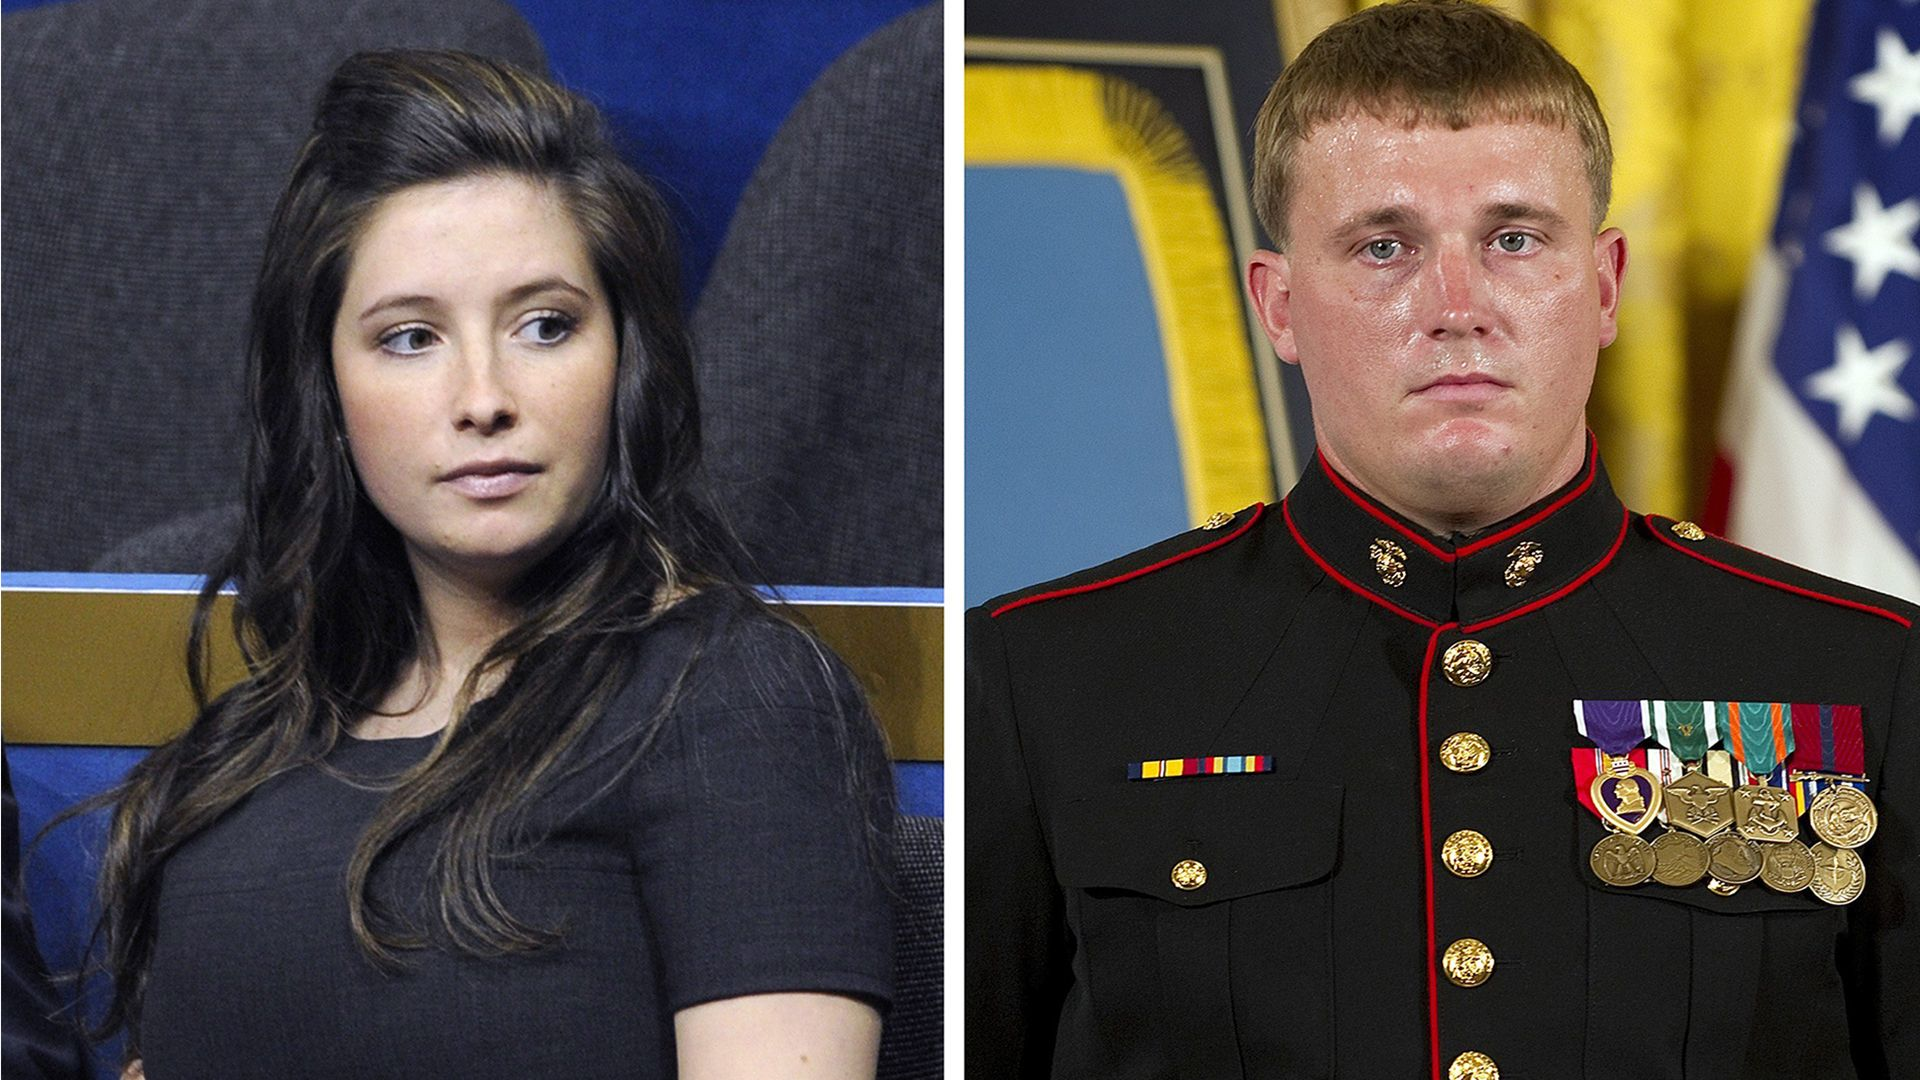 Bristol Palin S Wedding Called Off Her Mom Sarah Palin Announces Bristol Celebrity Entertainment Wedding